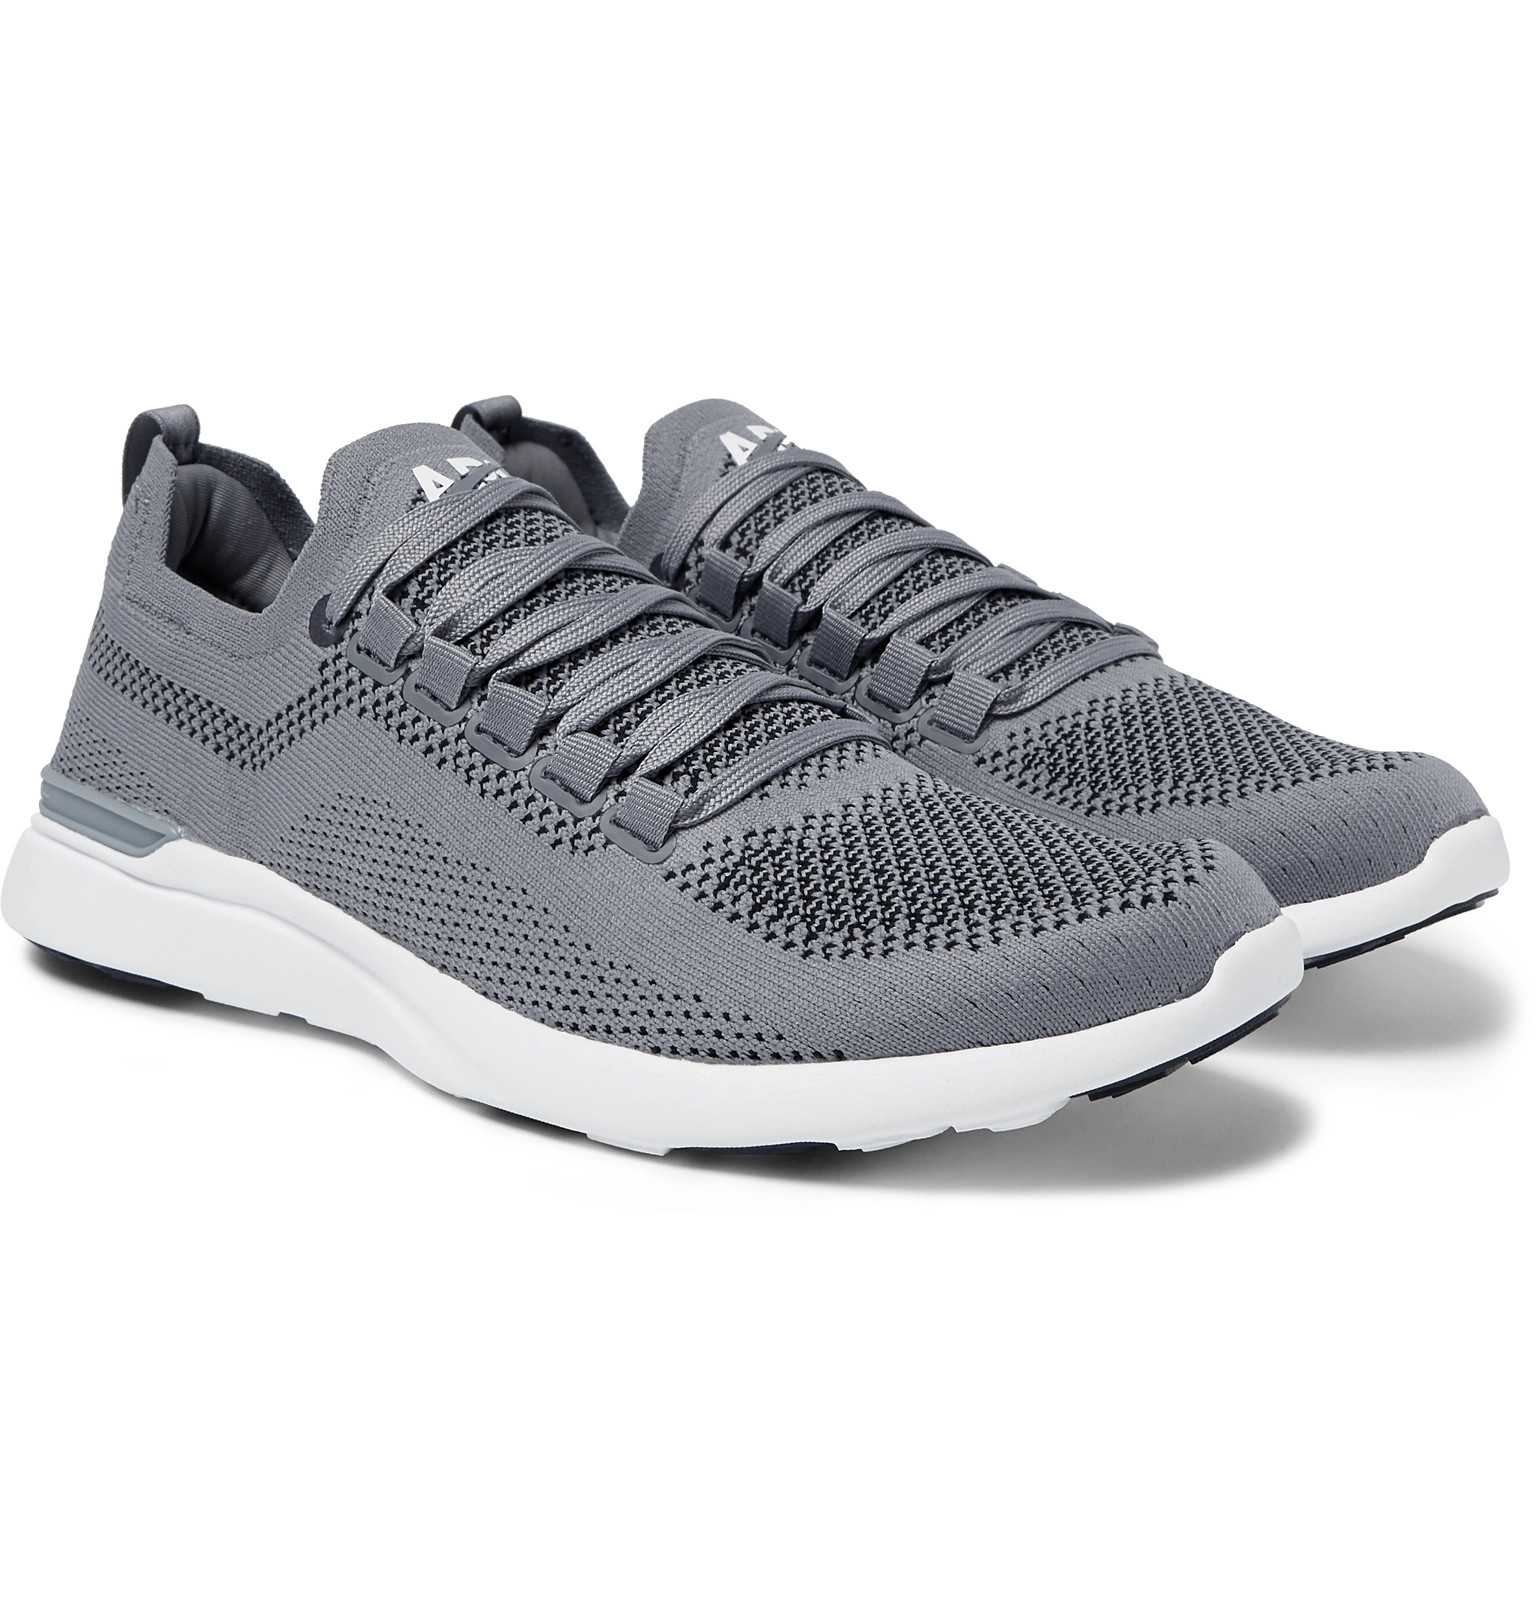 adcd034a52a APL Athletic Propulsion Labs - TechLoom Breeze Running Sneakers